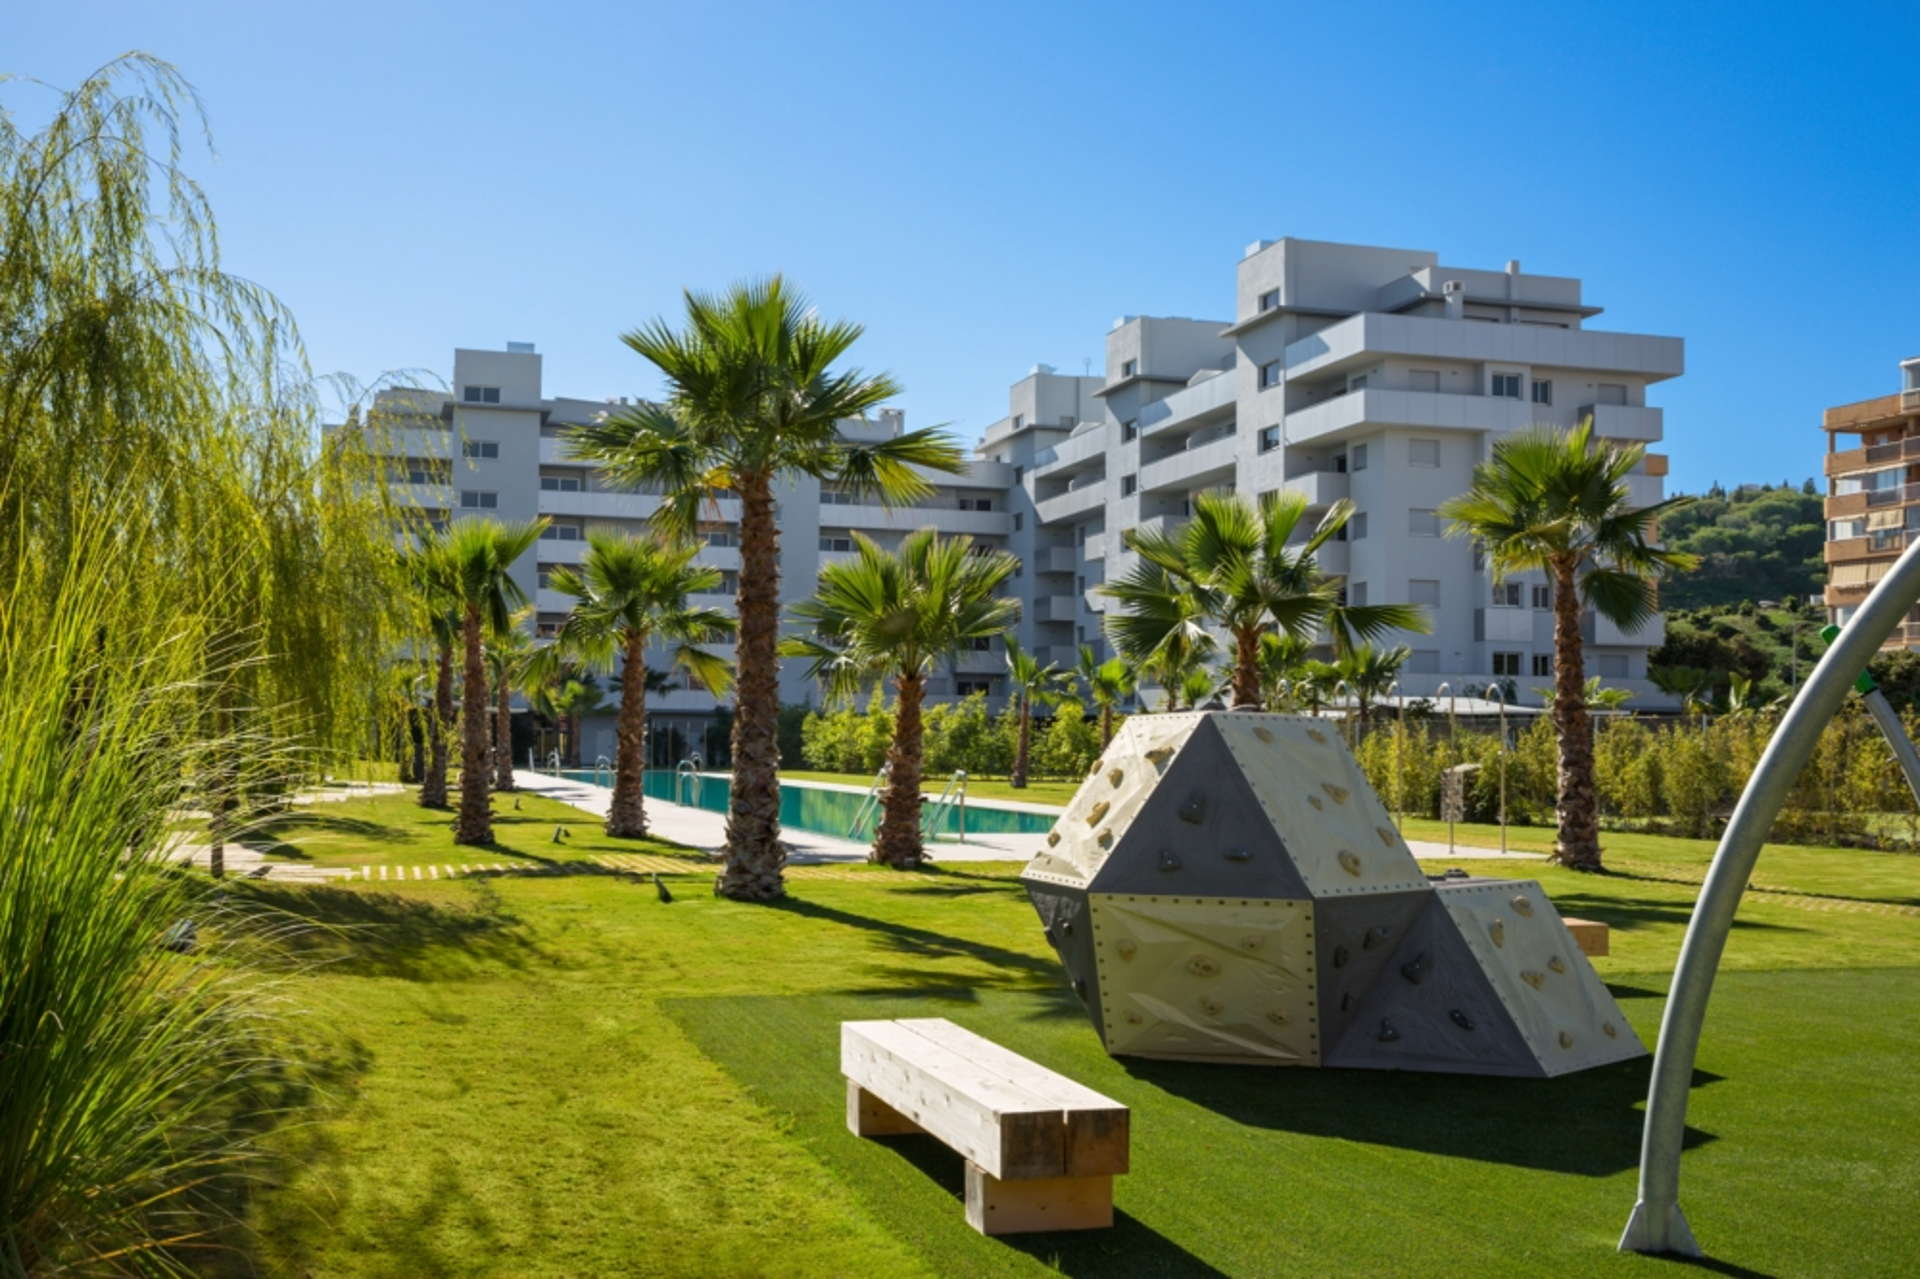 Apartment for sale Sauce2 Fuengirola close to beaches Marbella